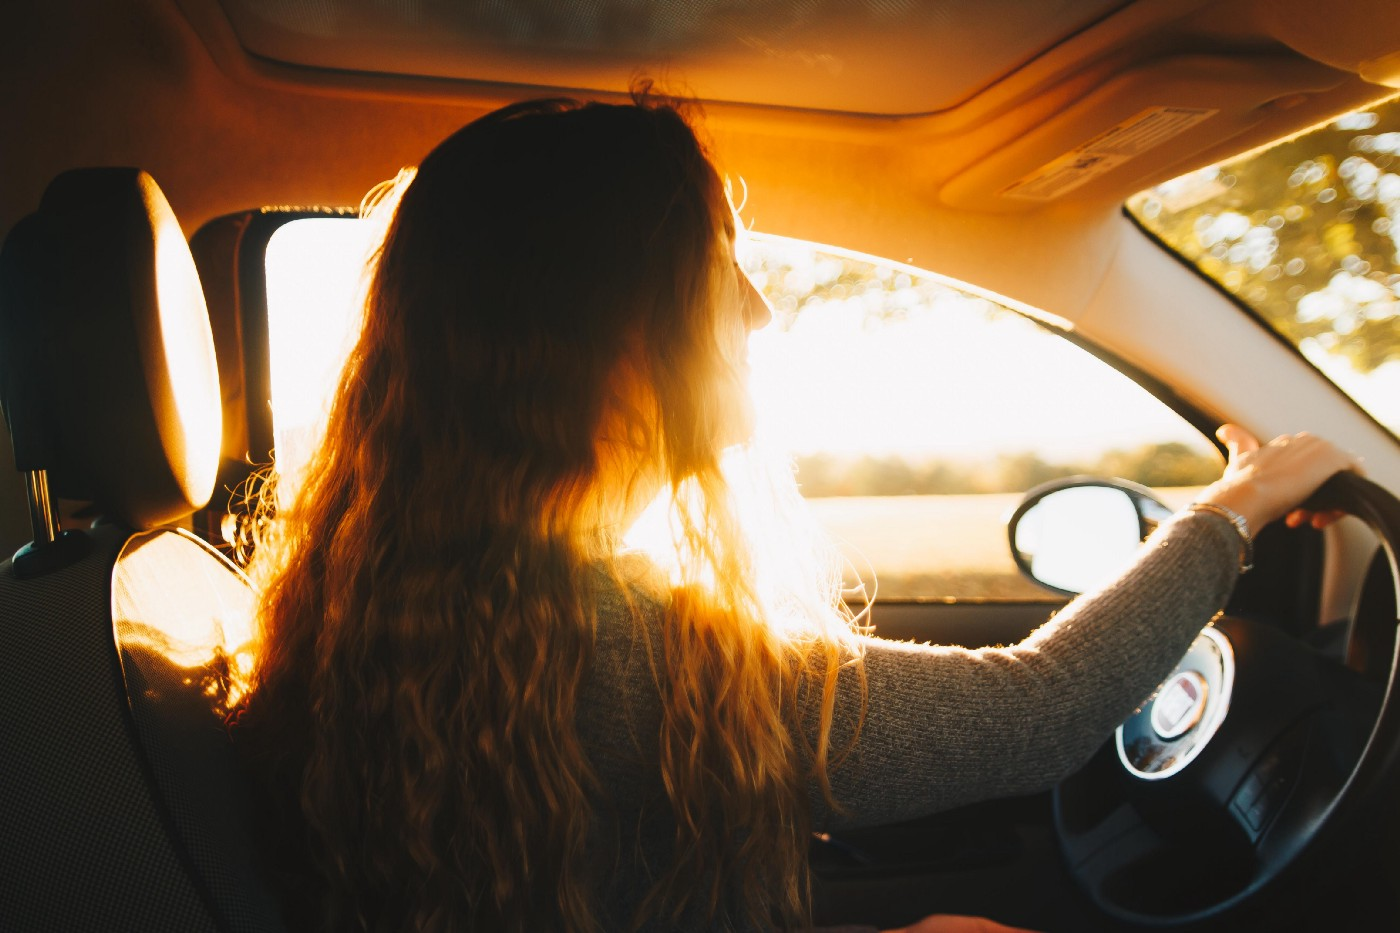 Golden light framing a long haired girl at the wheel of a car